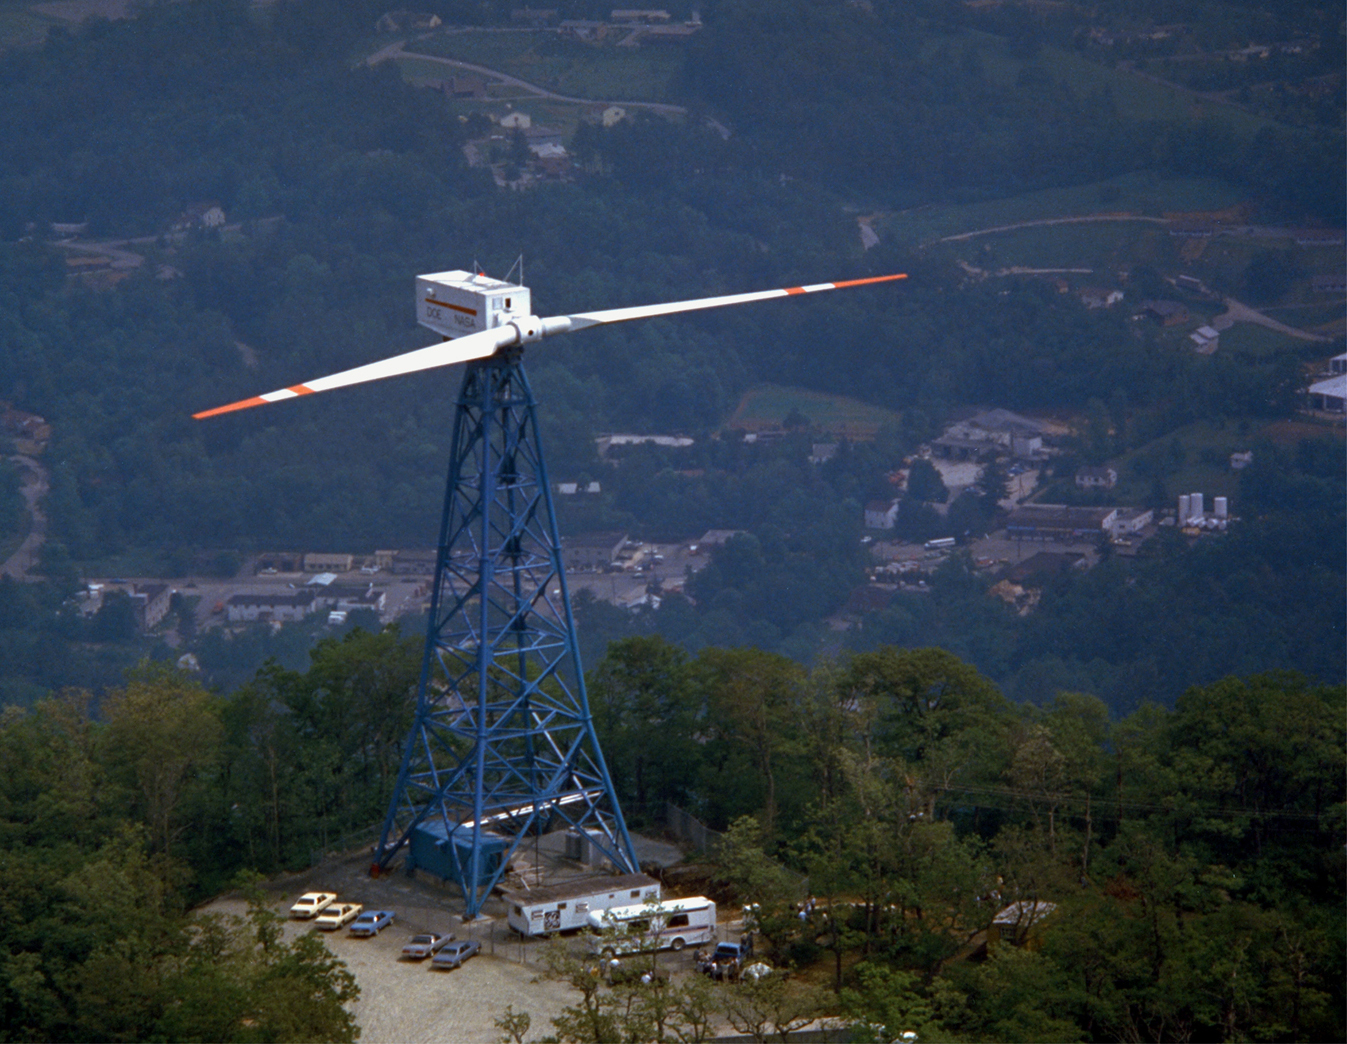 NASA_Mod_1_wind_turbine.jpg